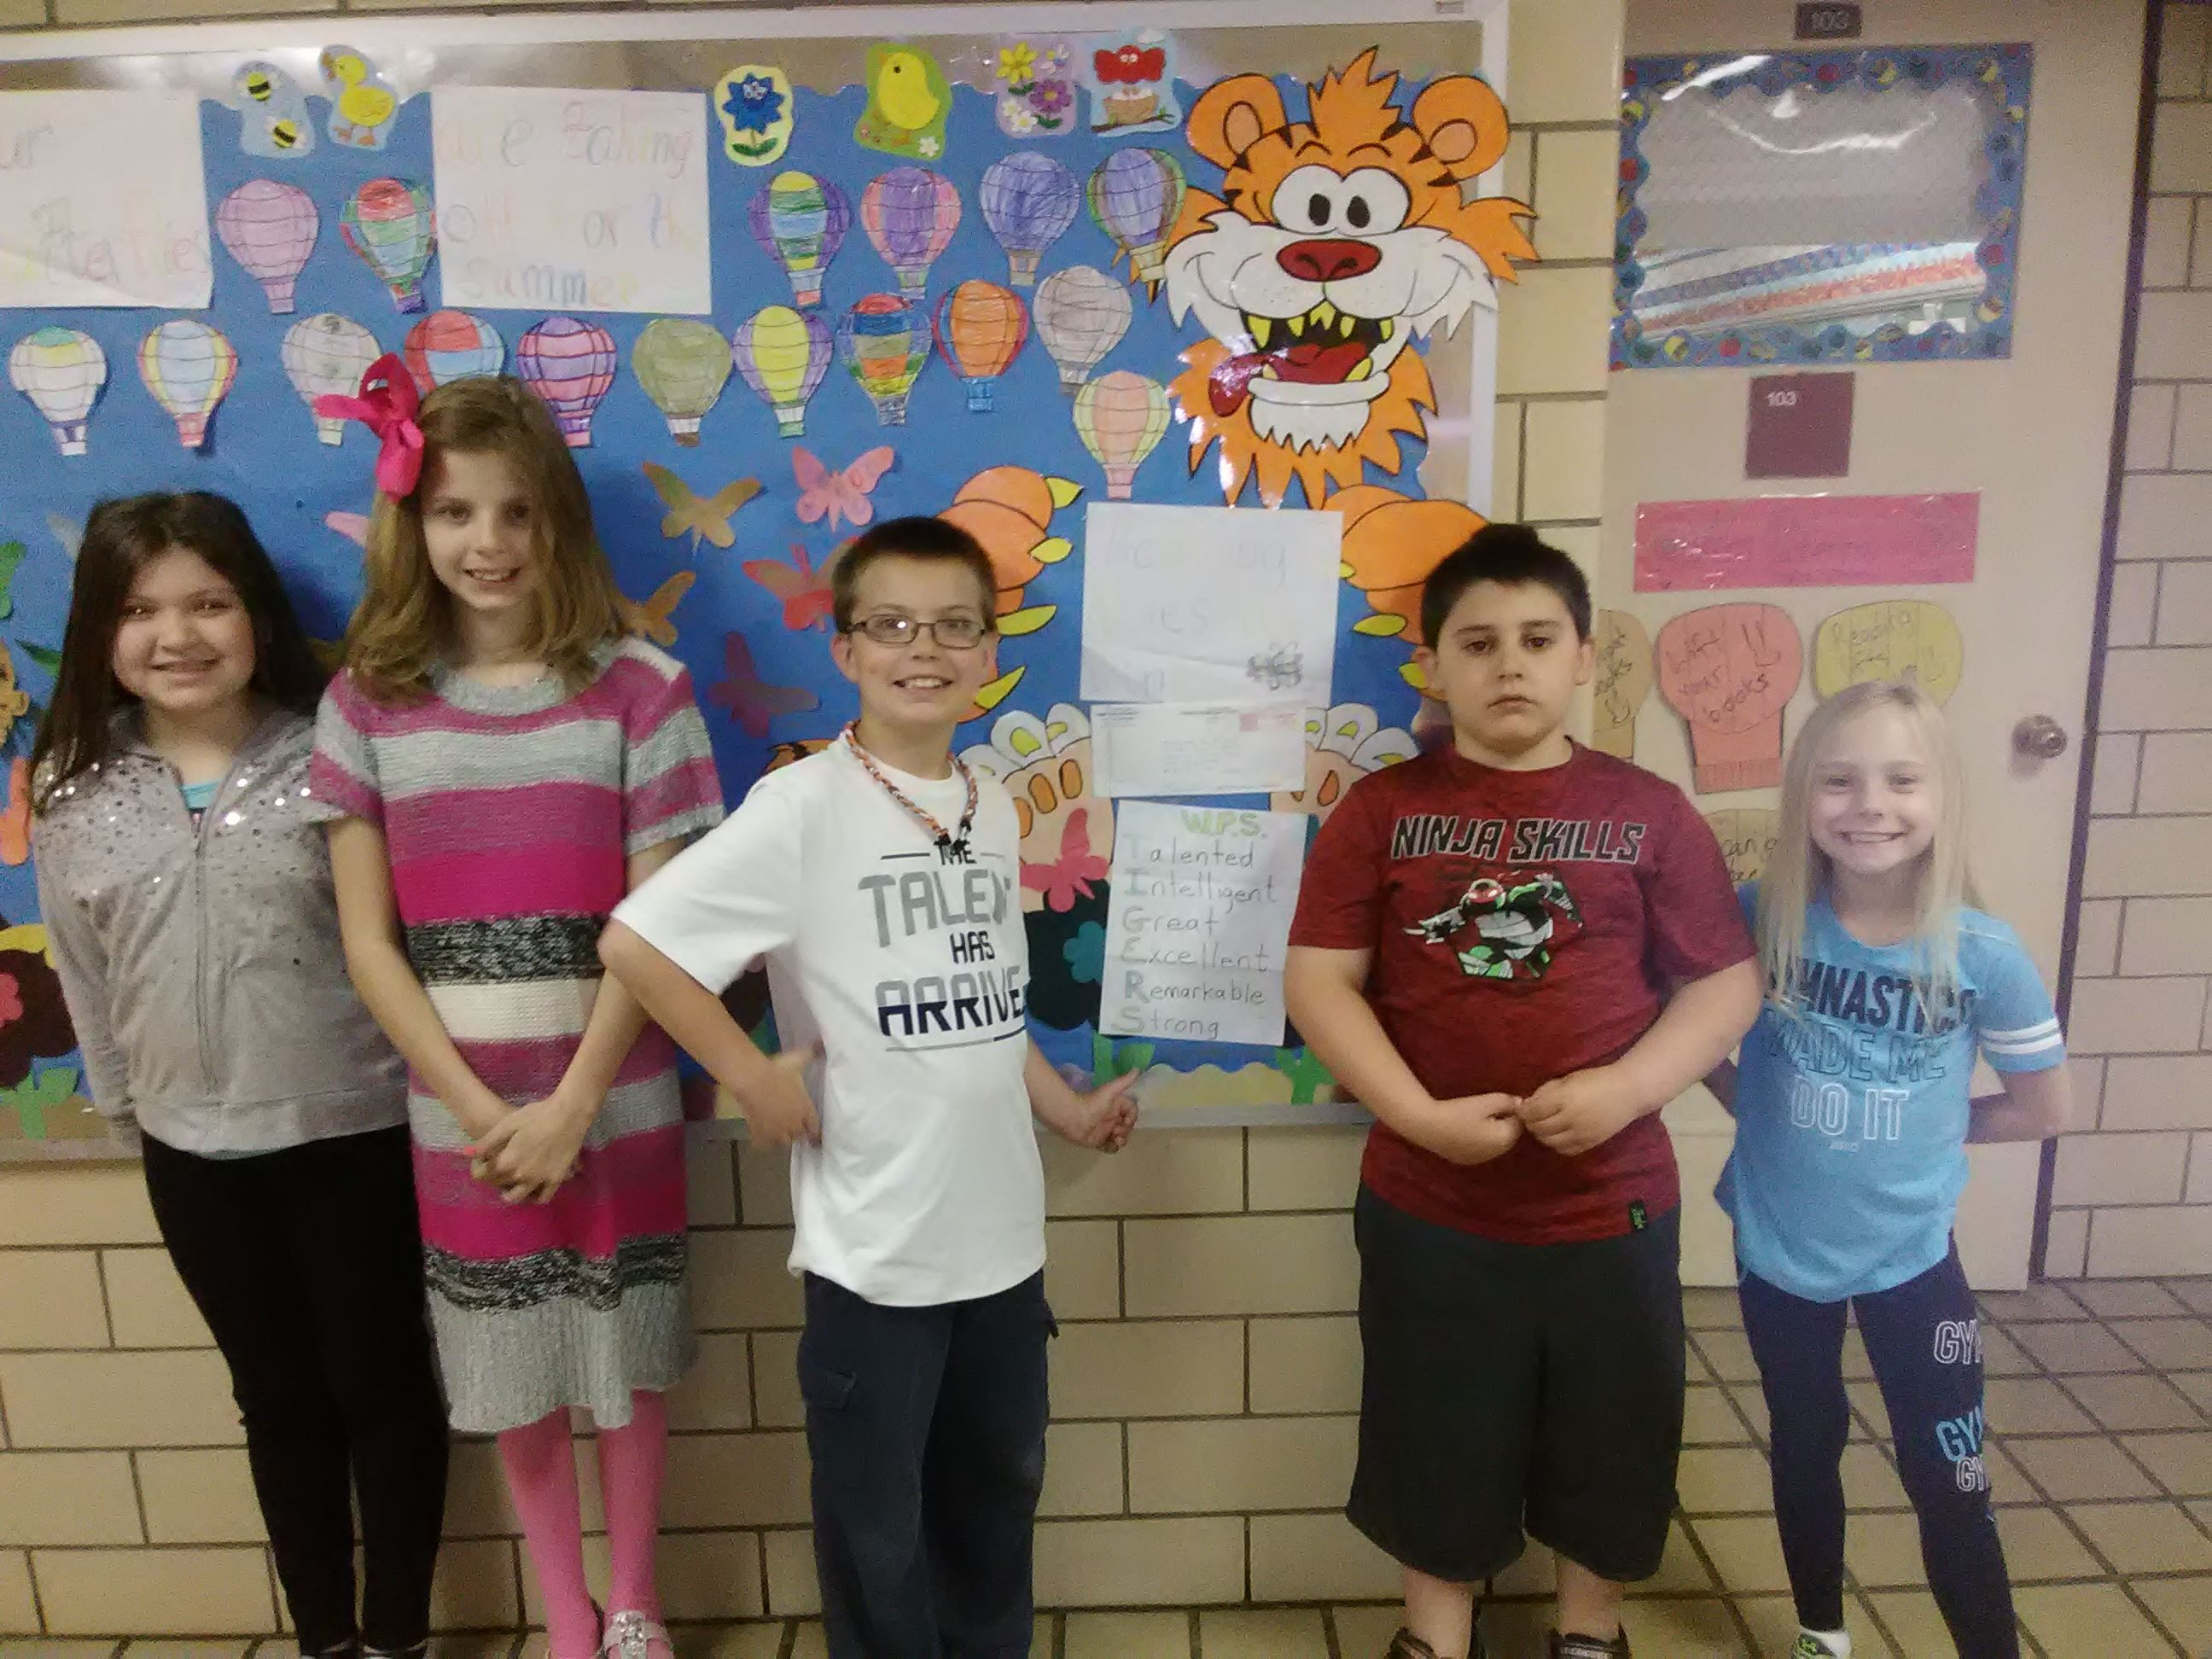 Our Pen Pals at Wellsburg Primary sent us another picture toward the end of the school year.